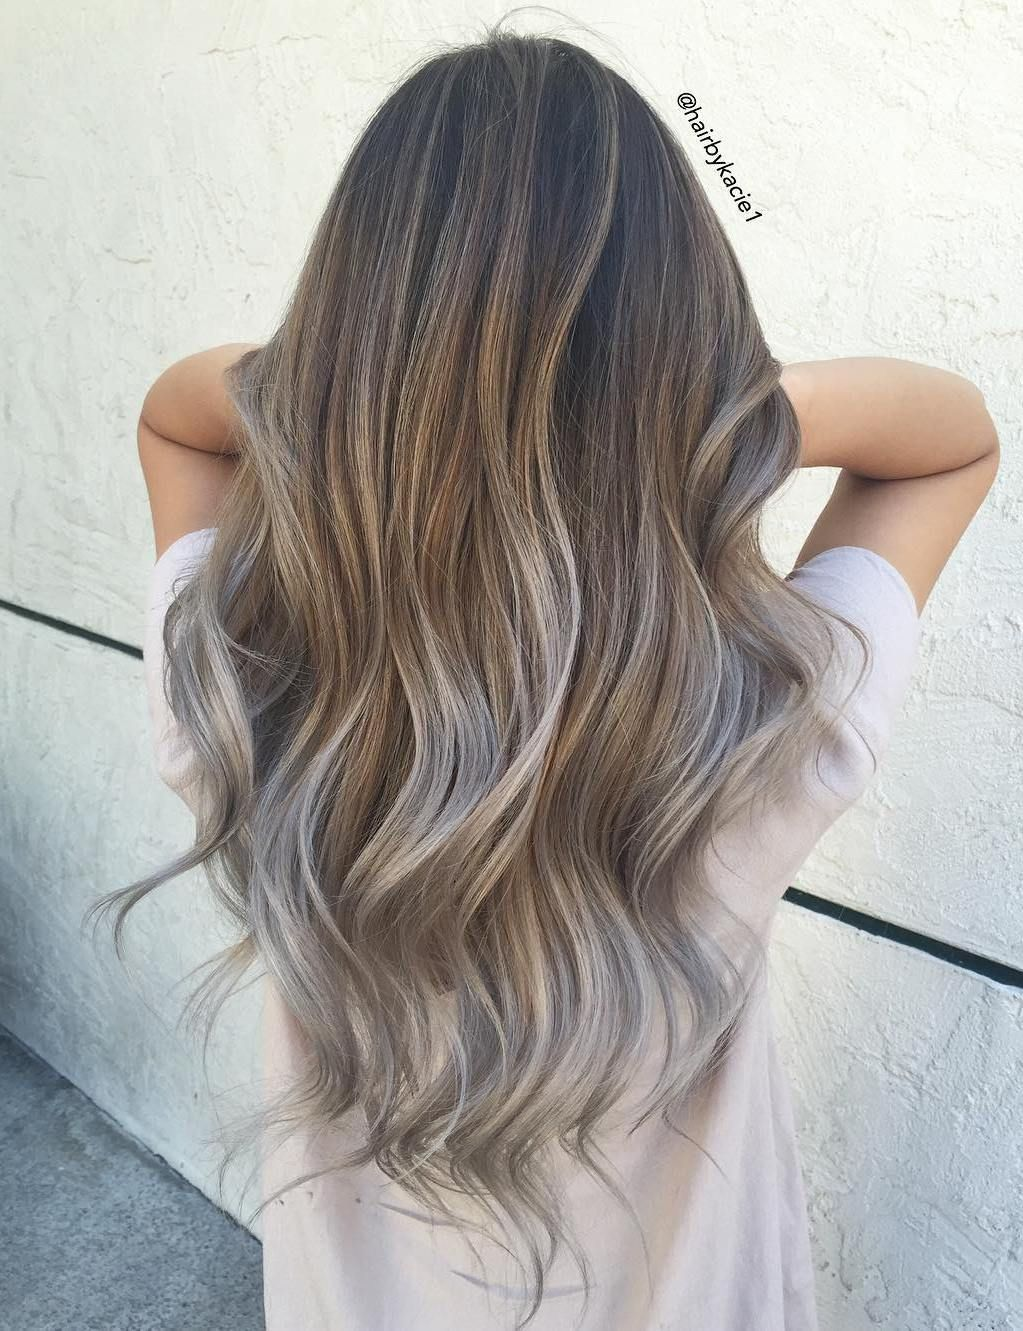 90 balayage hair color ideas with blonde brown and caramel 90 balayage hair color ideas with blonde brown and caramel highlights pmusecretfo Images